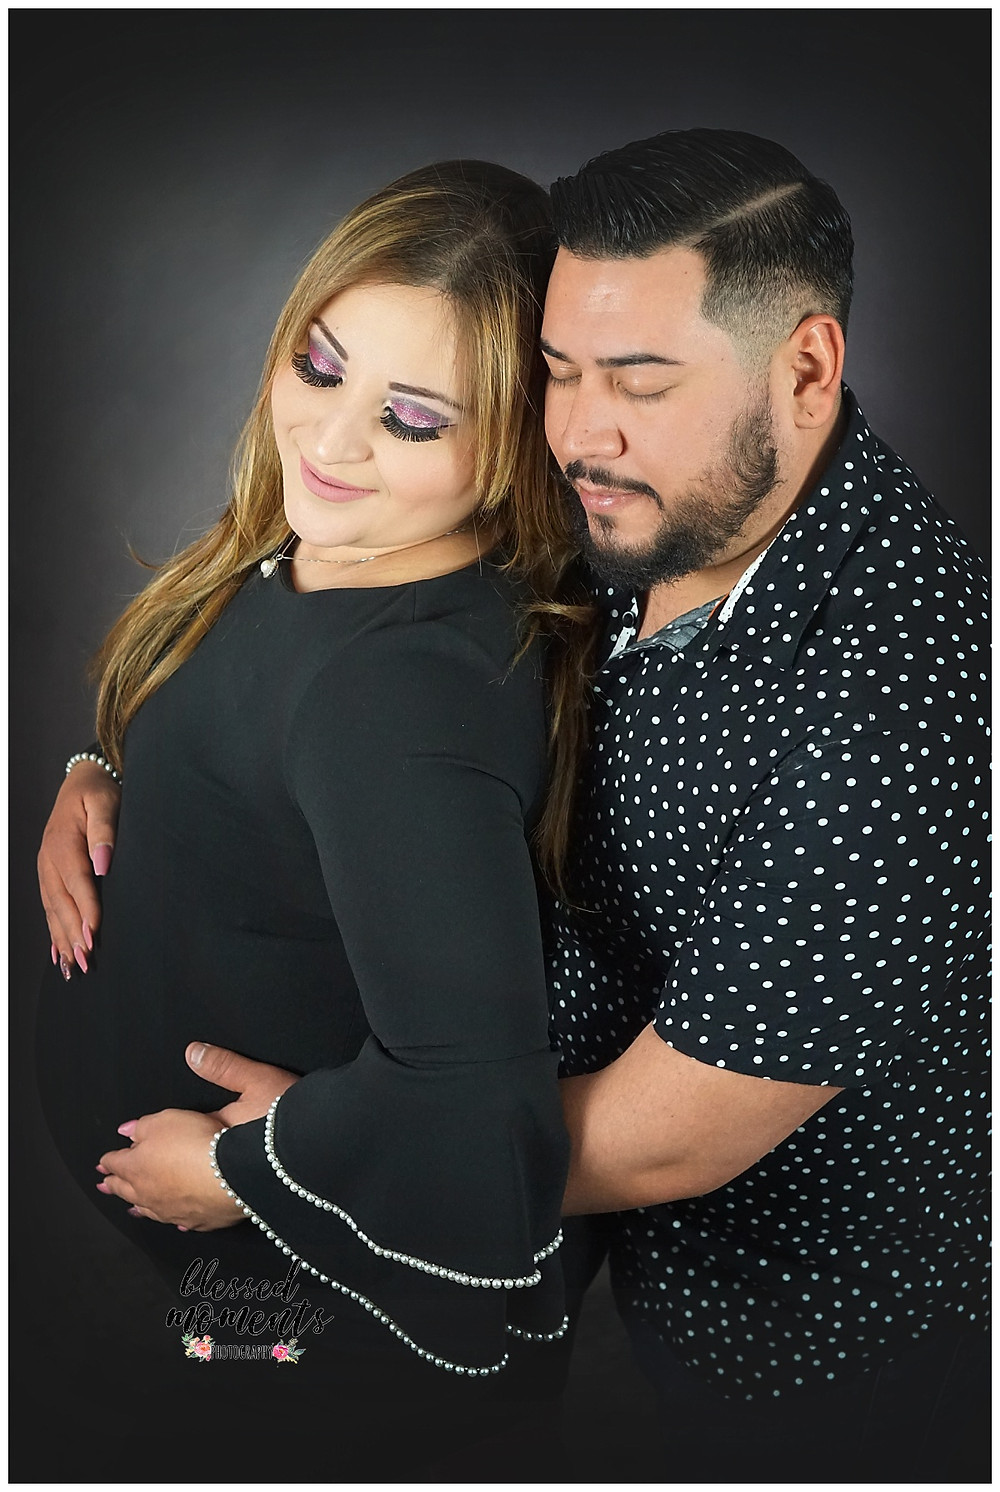 Maternity photography shot with husband in studio against dark background and black outfit.